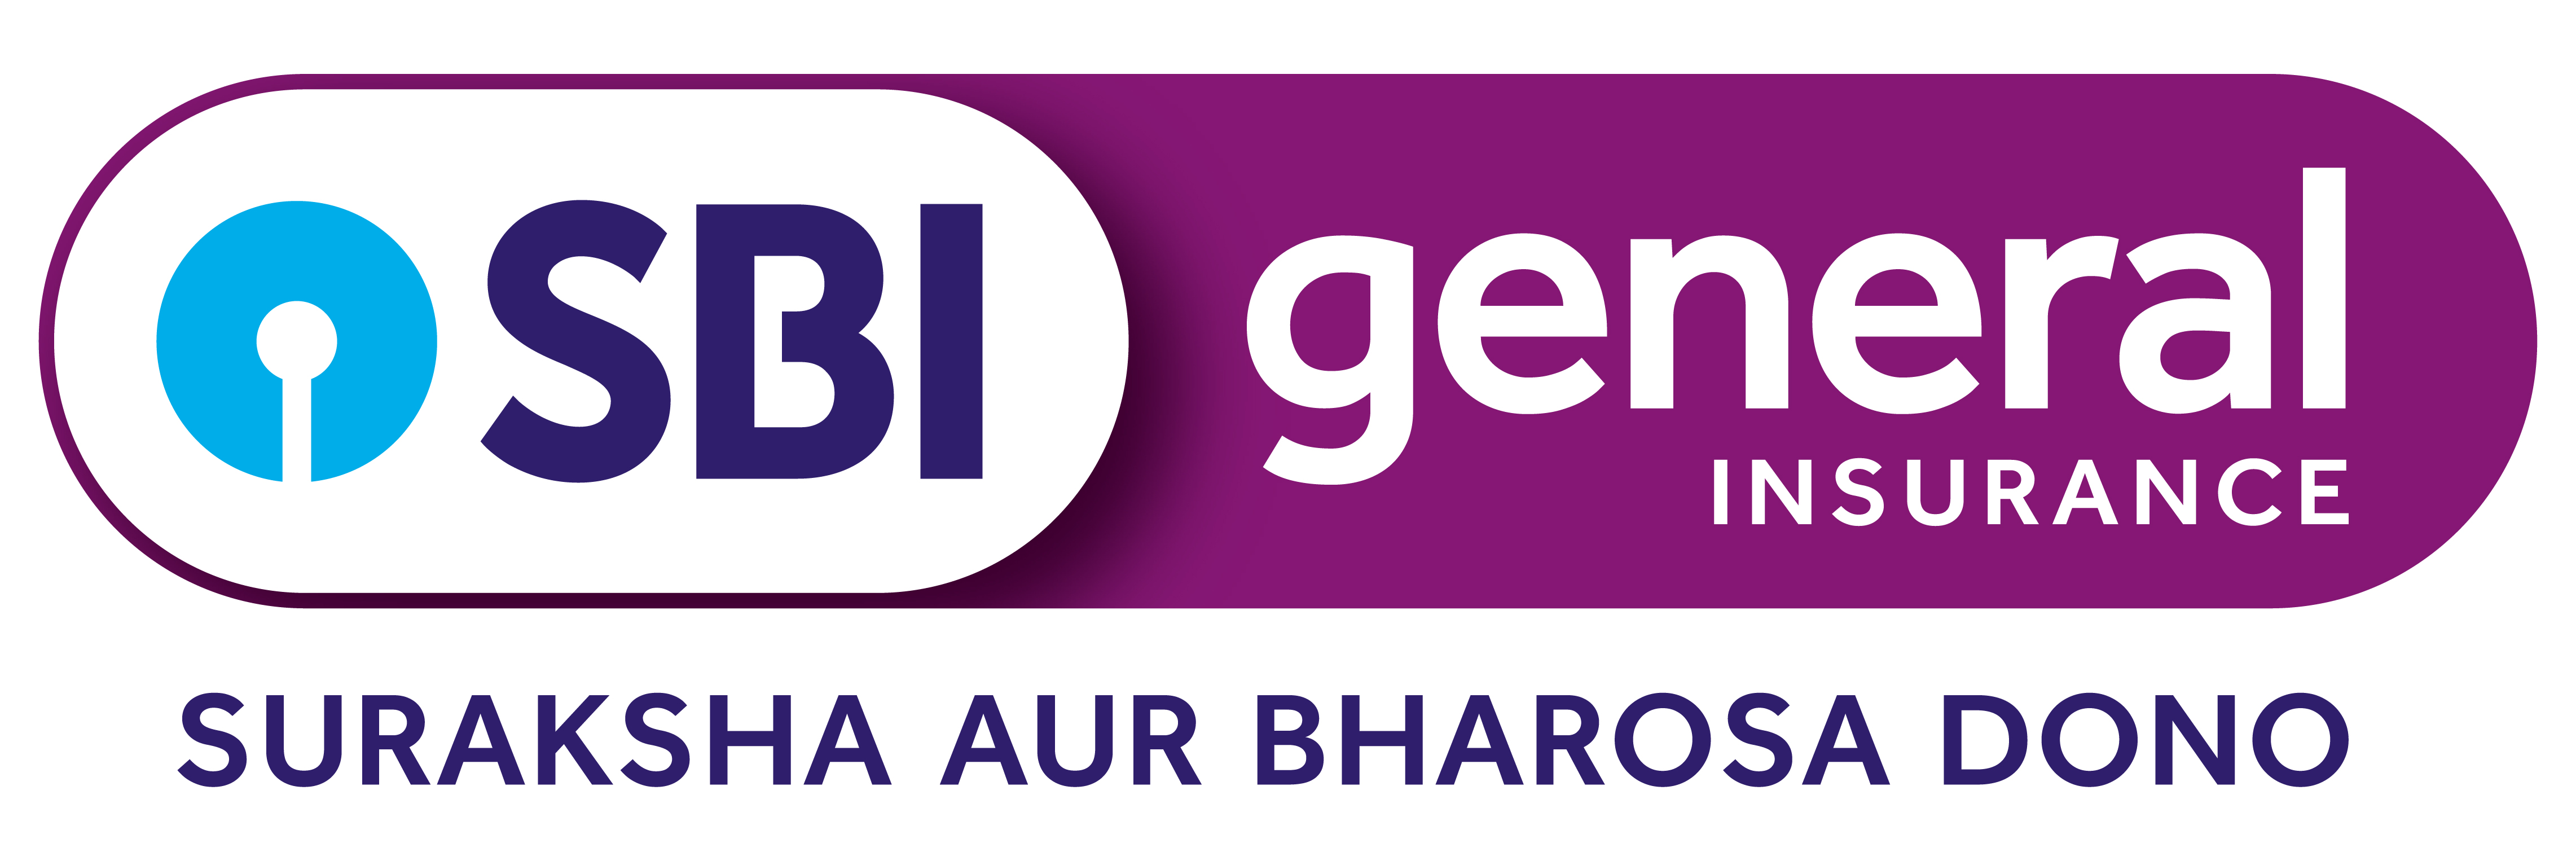 Insurance Partner of PayBima - SBI General Insurance